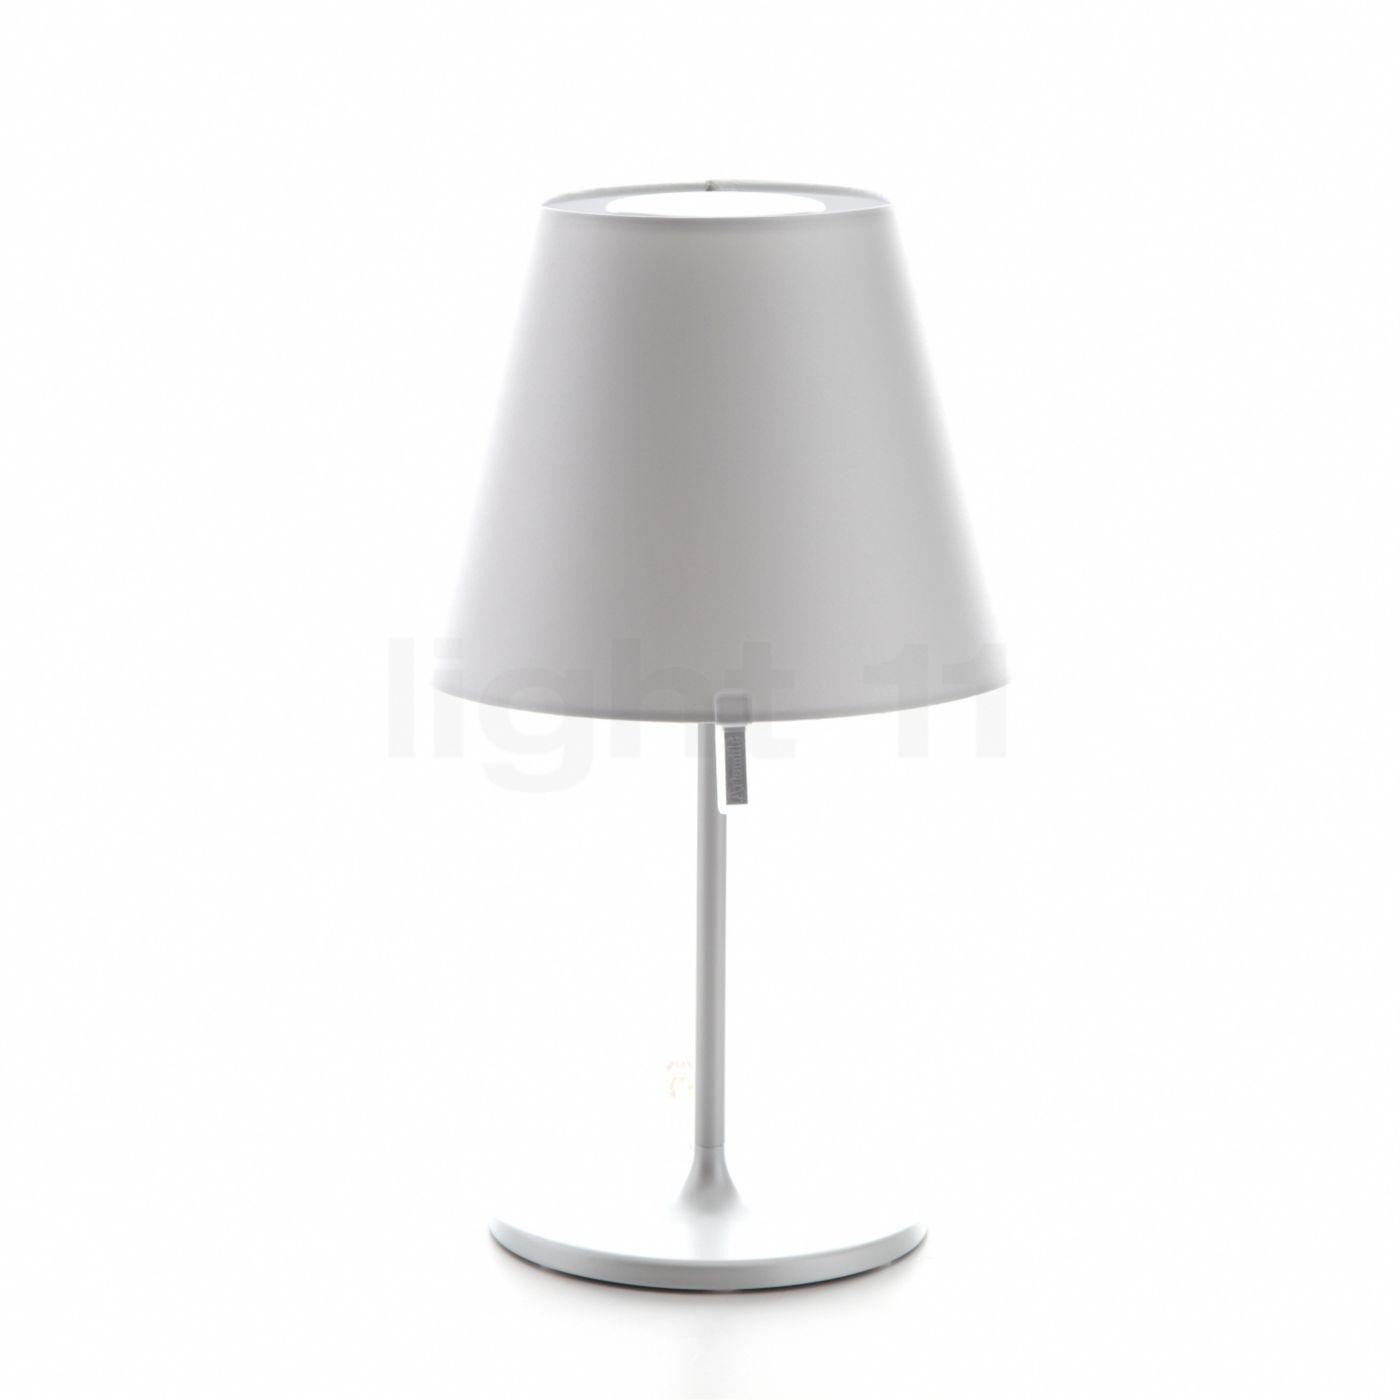 Lamps Childrens Bedrooms Bedside Table Lamps Interior For Childrens Bedrooms At Light11eu